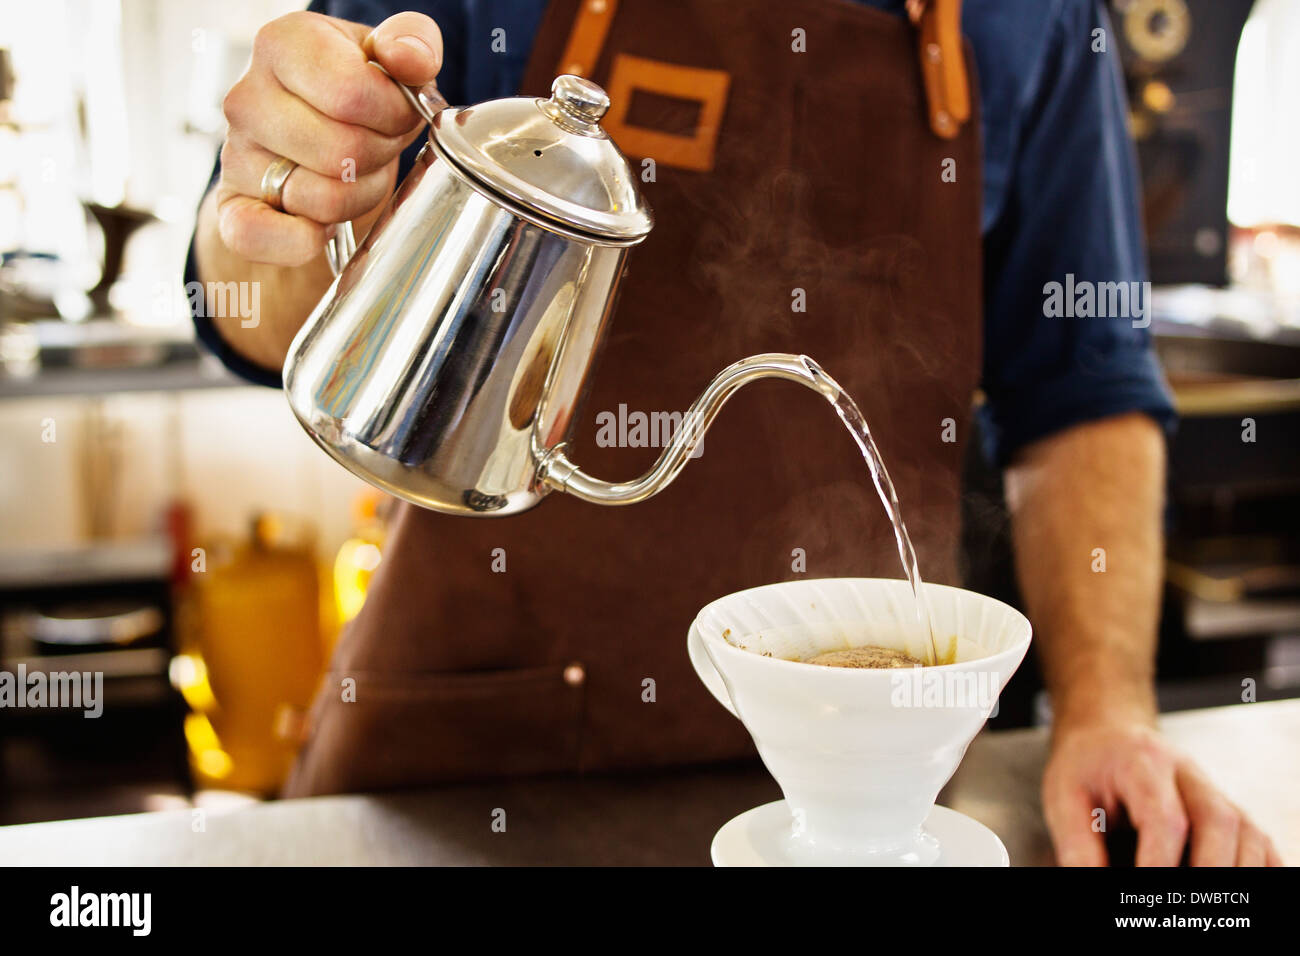 Close up of barista pouring boiling water into coffee filter - Stock Image